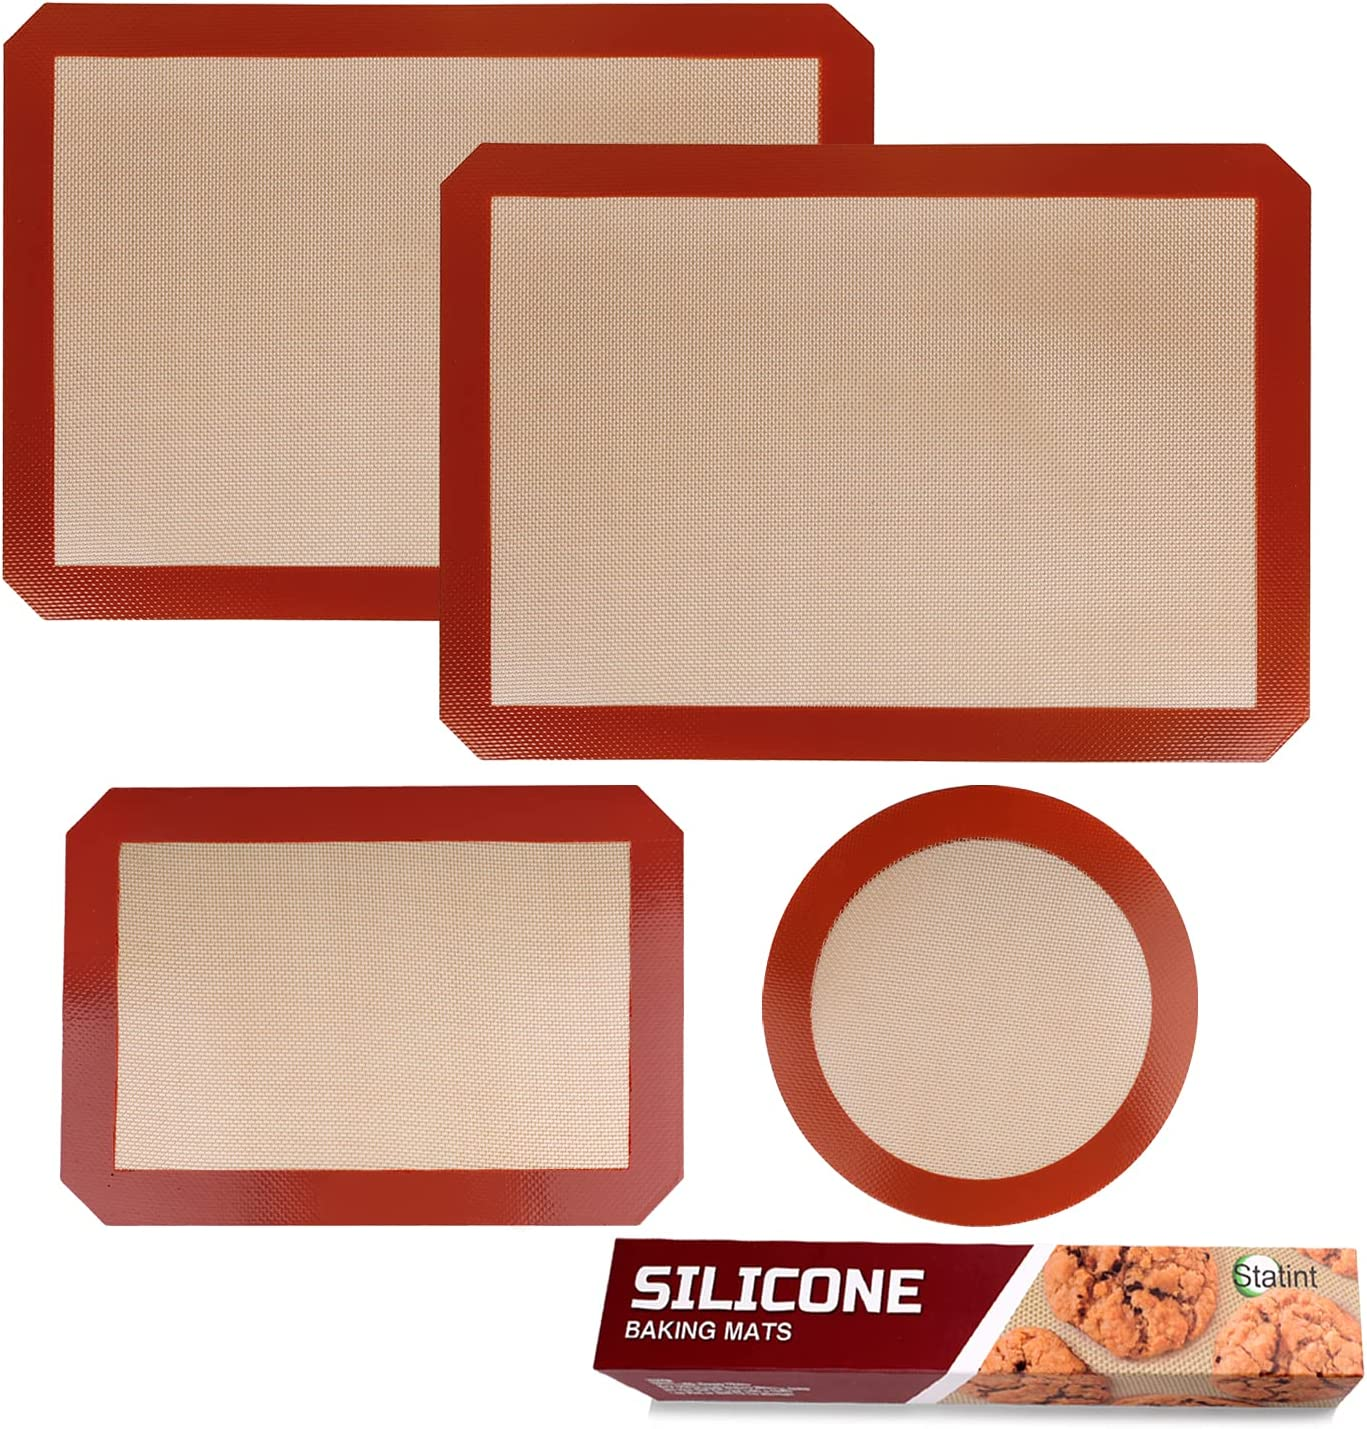 STATINT Non-Stick Silicone Baking Mat Max 87% OFF Premium - Food Safe Pack 55% OFF